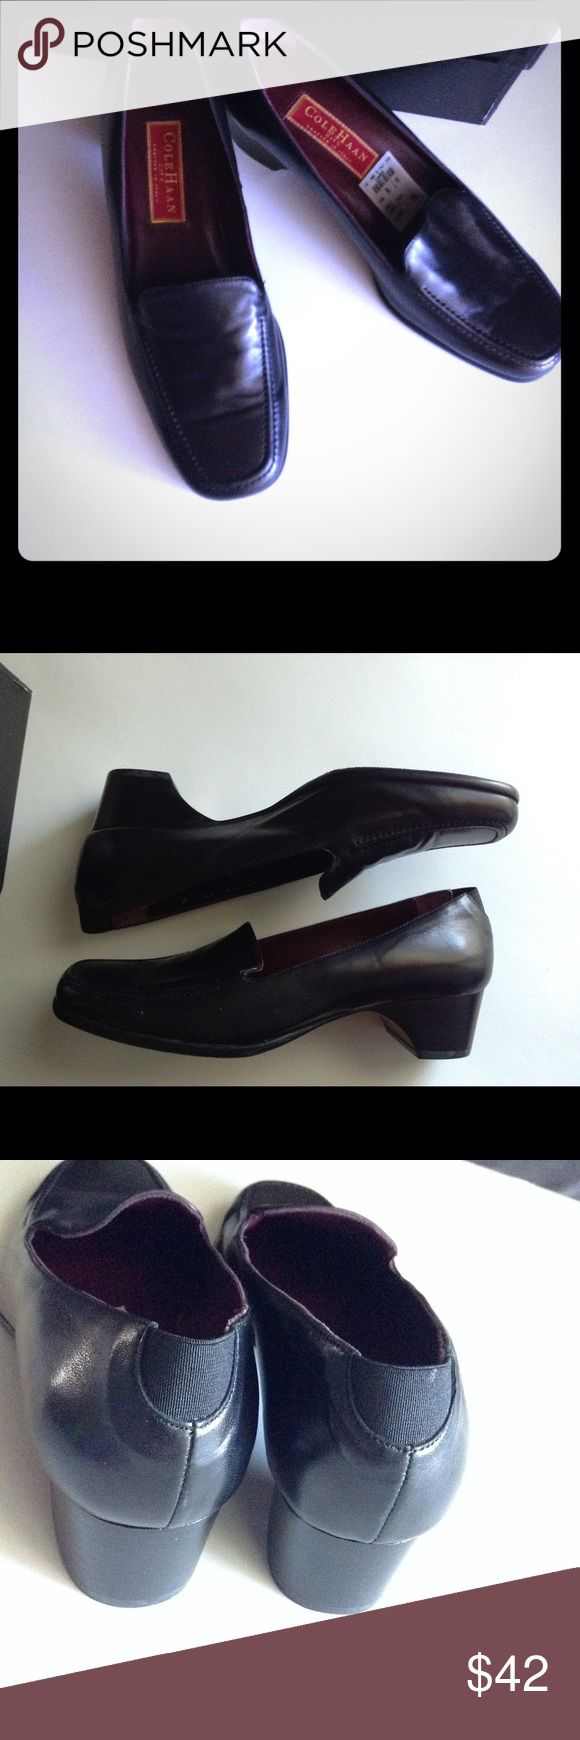 Comfortable Cole Haan shoes Comfortable Cole Haan shoes butter soft leather Cole Haan Shoes Flats & Loafers